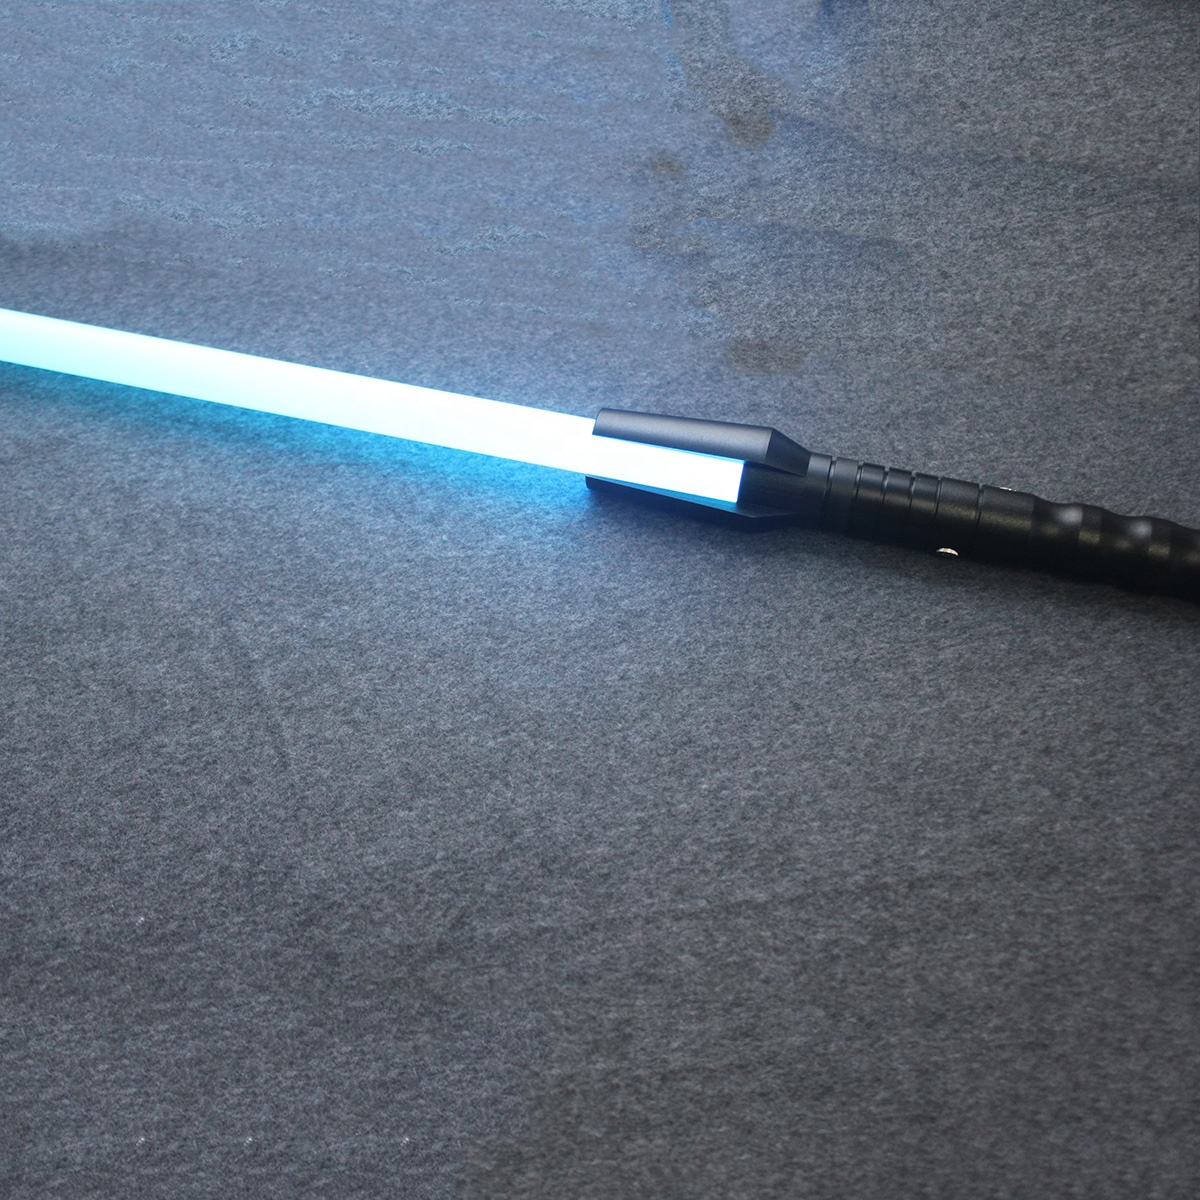 Yddsaber base lit high quality metal hilt complete heavy dueling FOC lightsaber with bright light and loud sound